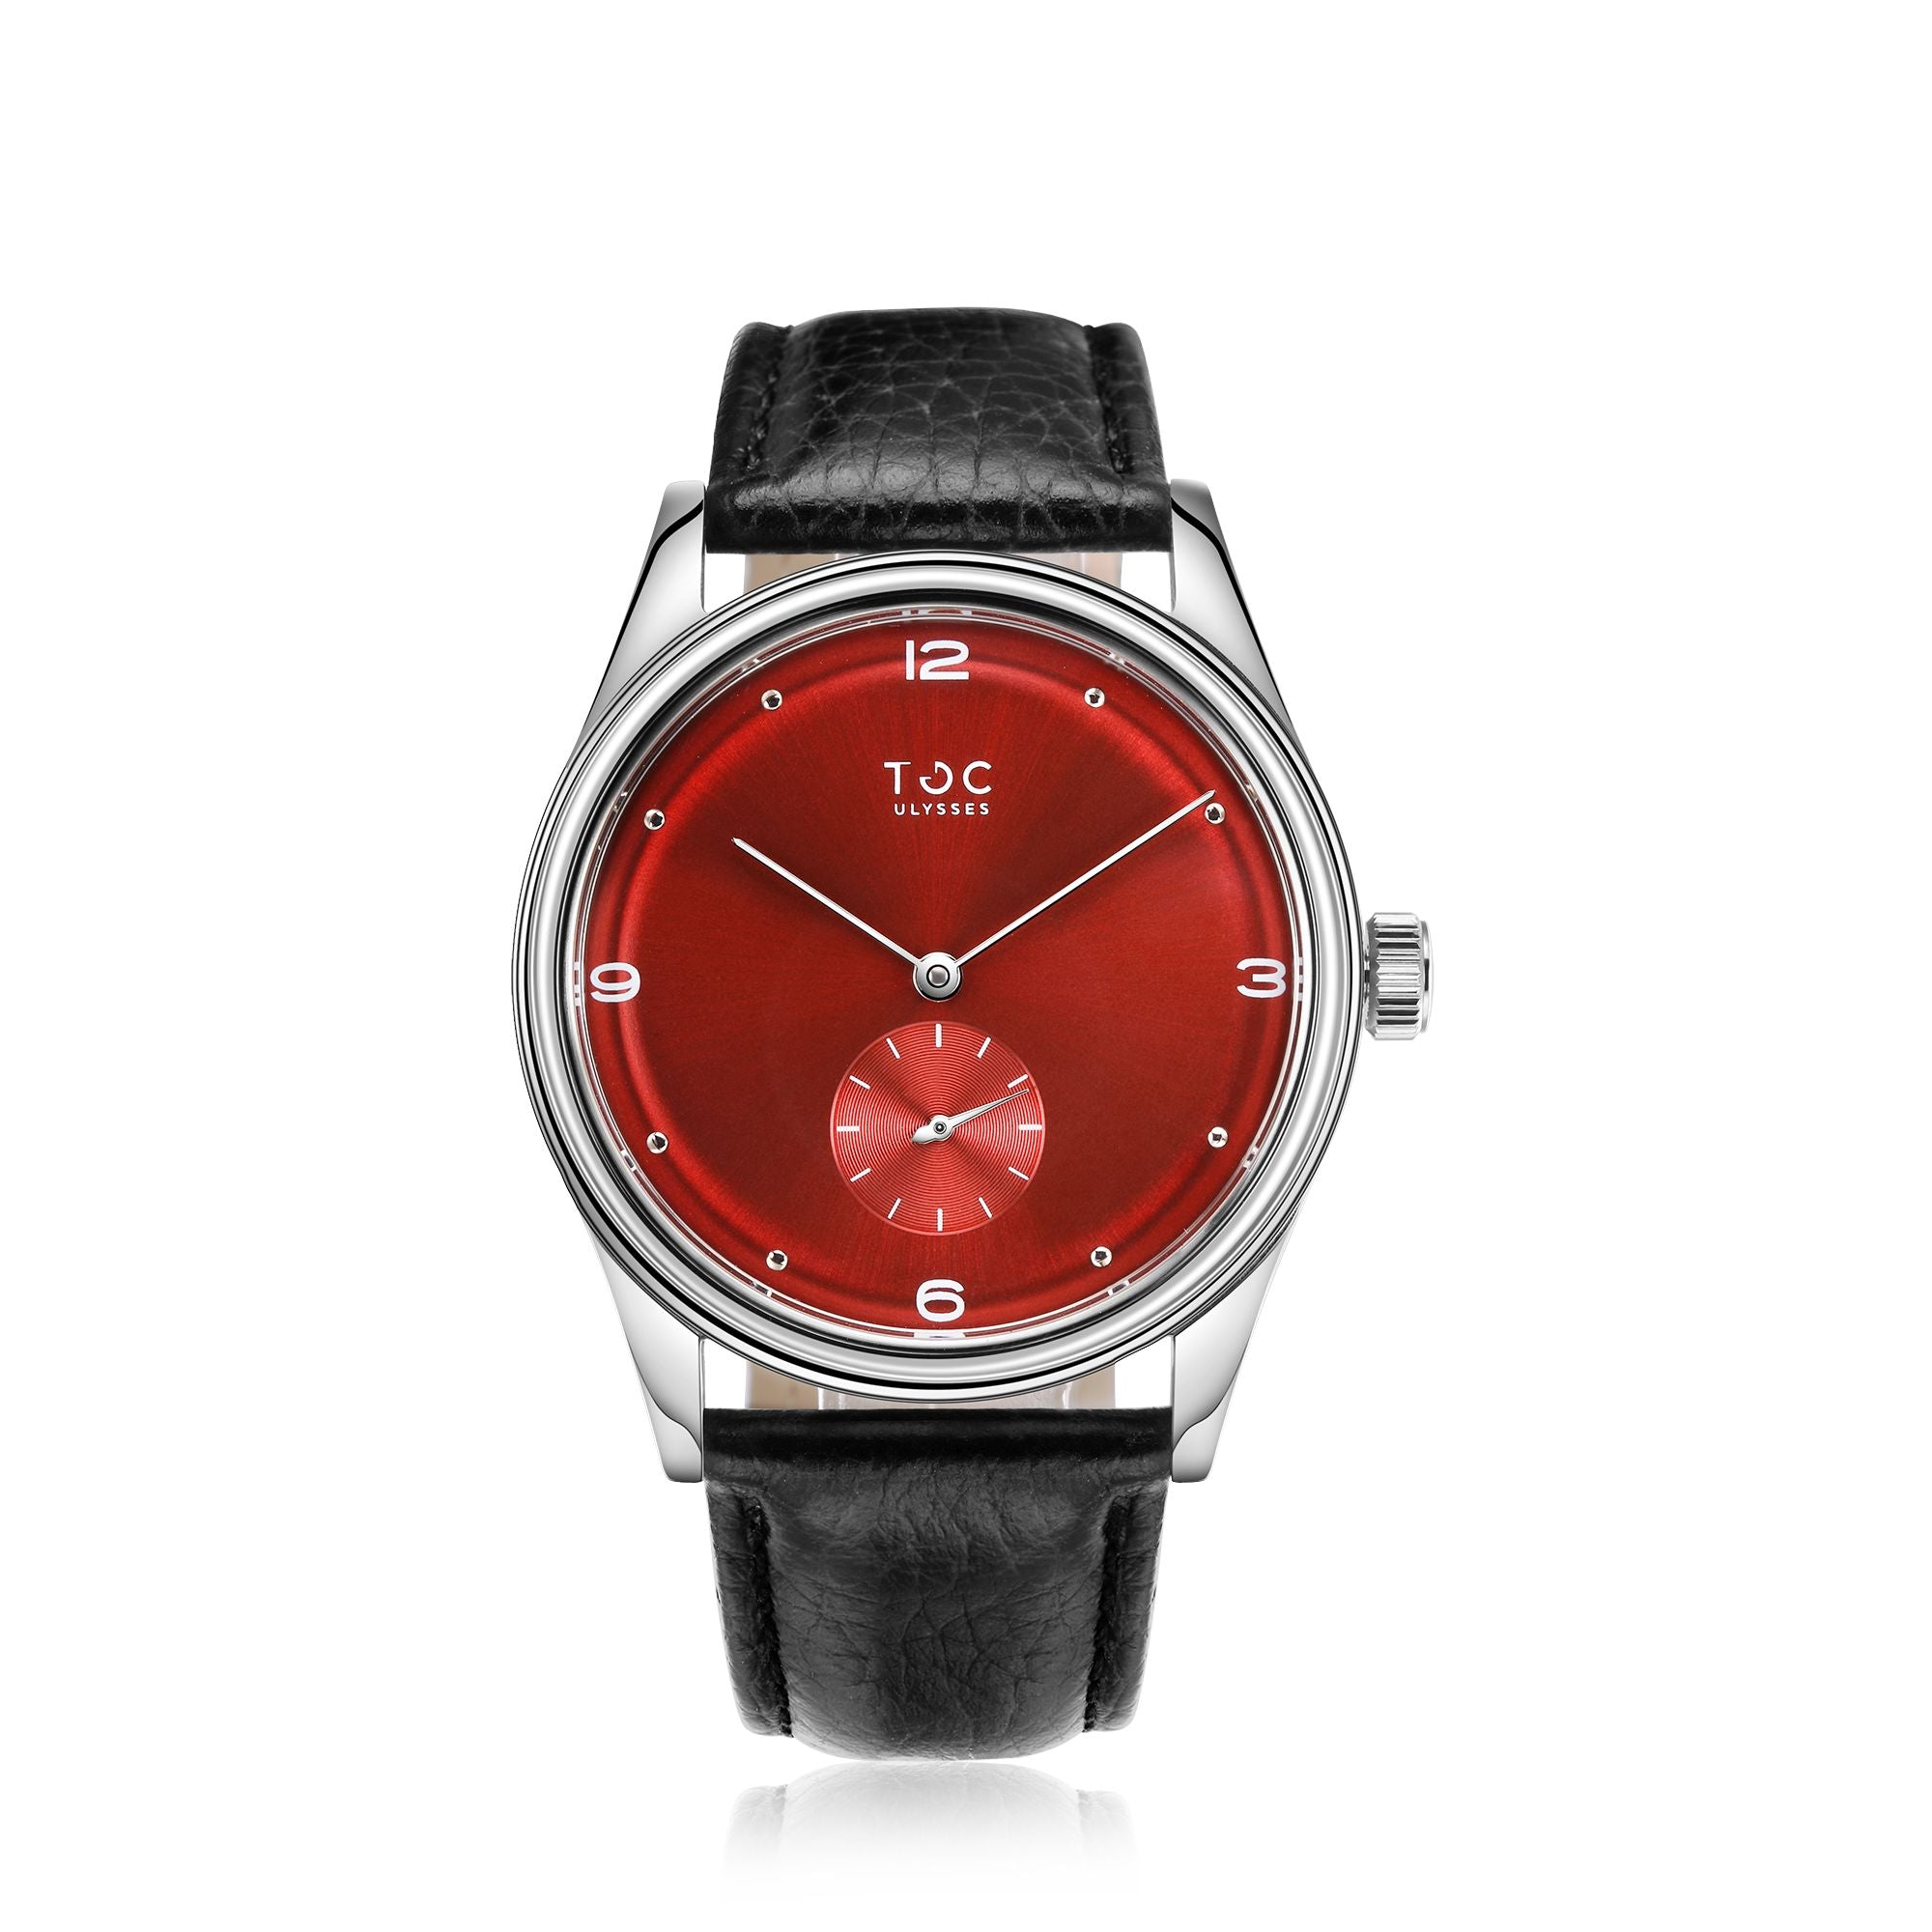 london red watches watch rose en and links amp hires narrative of plate leather eu gold